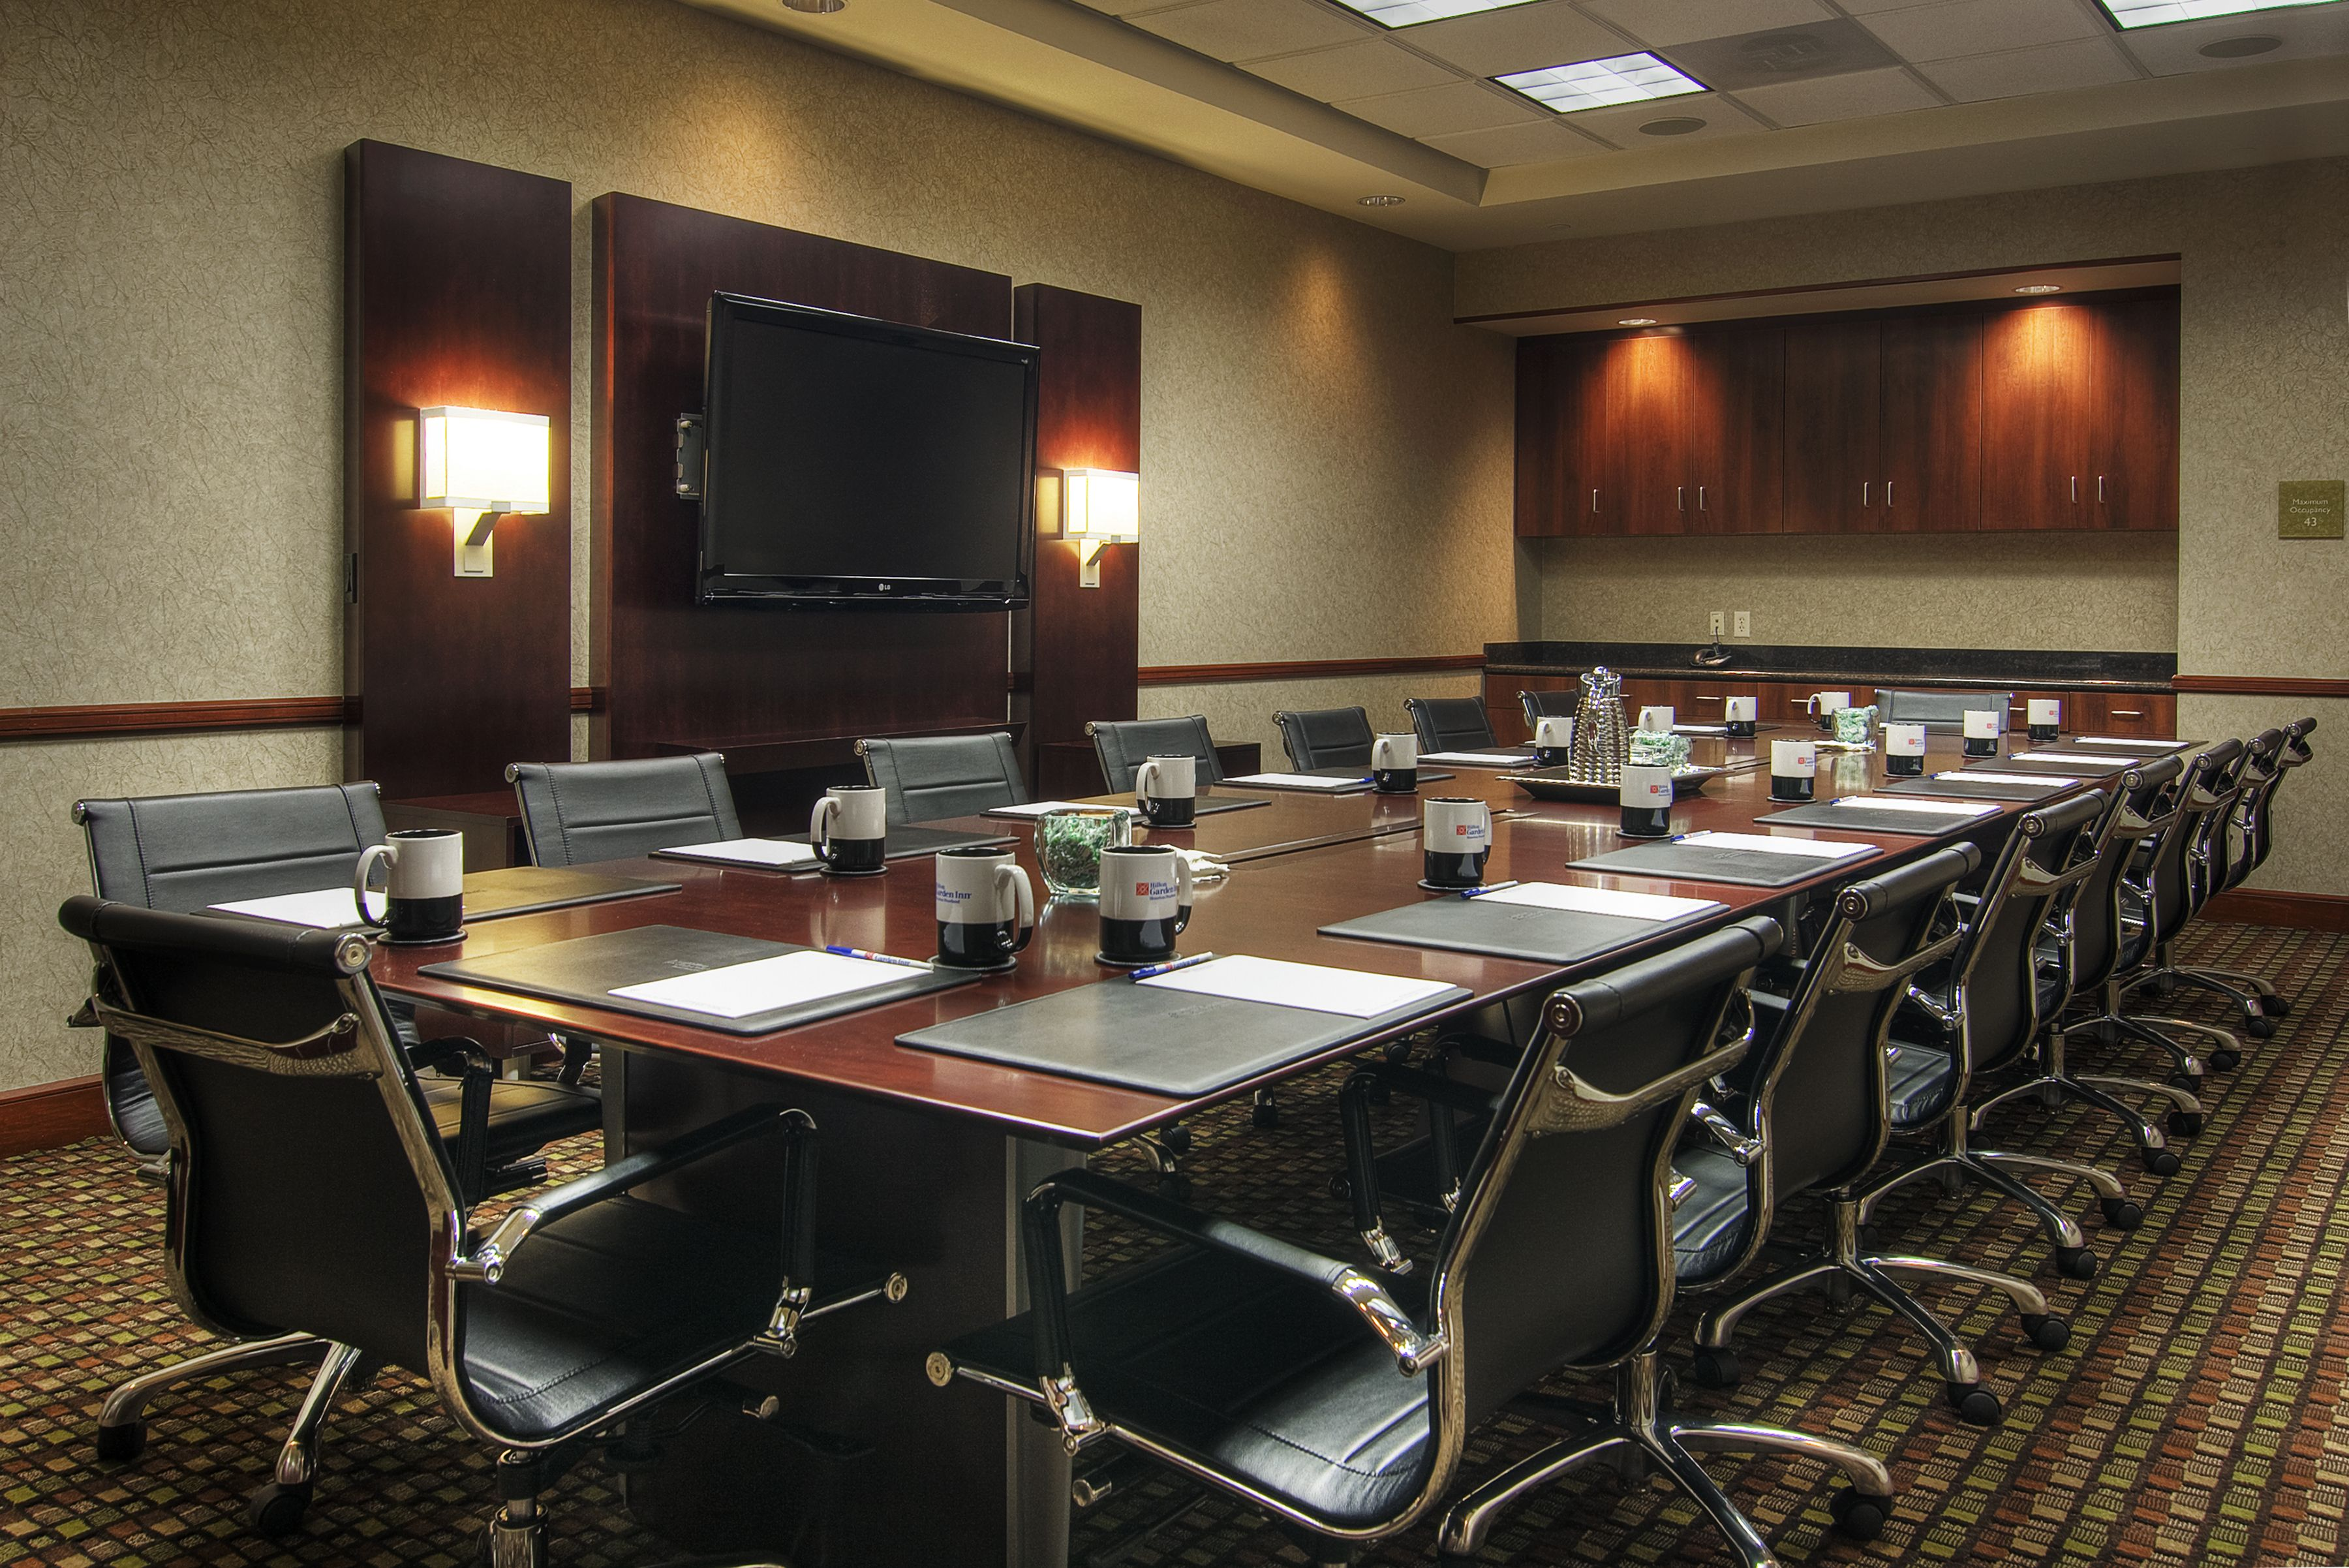 The Bartlett Boardroom At The Hilton Garden Inn Houston Pearland In Texas,  Seats At Least 12 And Offers Ergonomic Seating, State Of Art A/V, ...